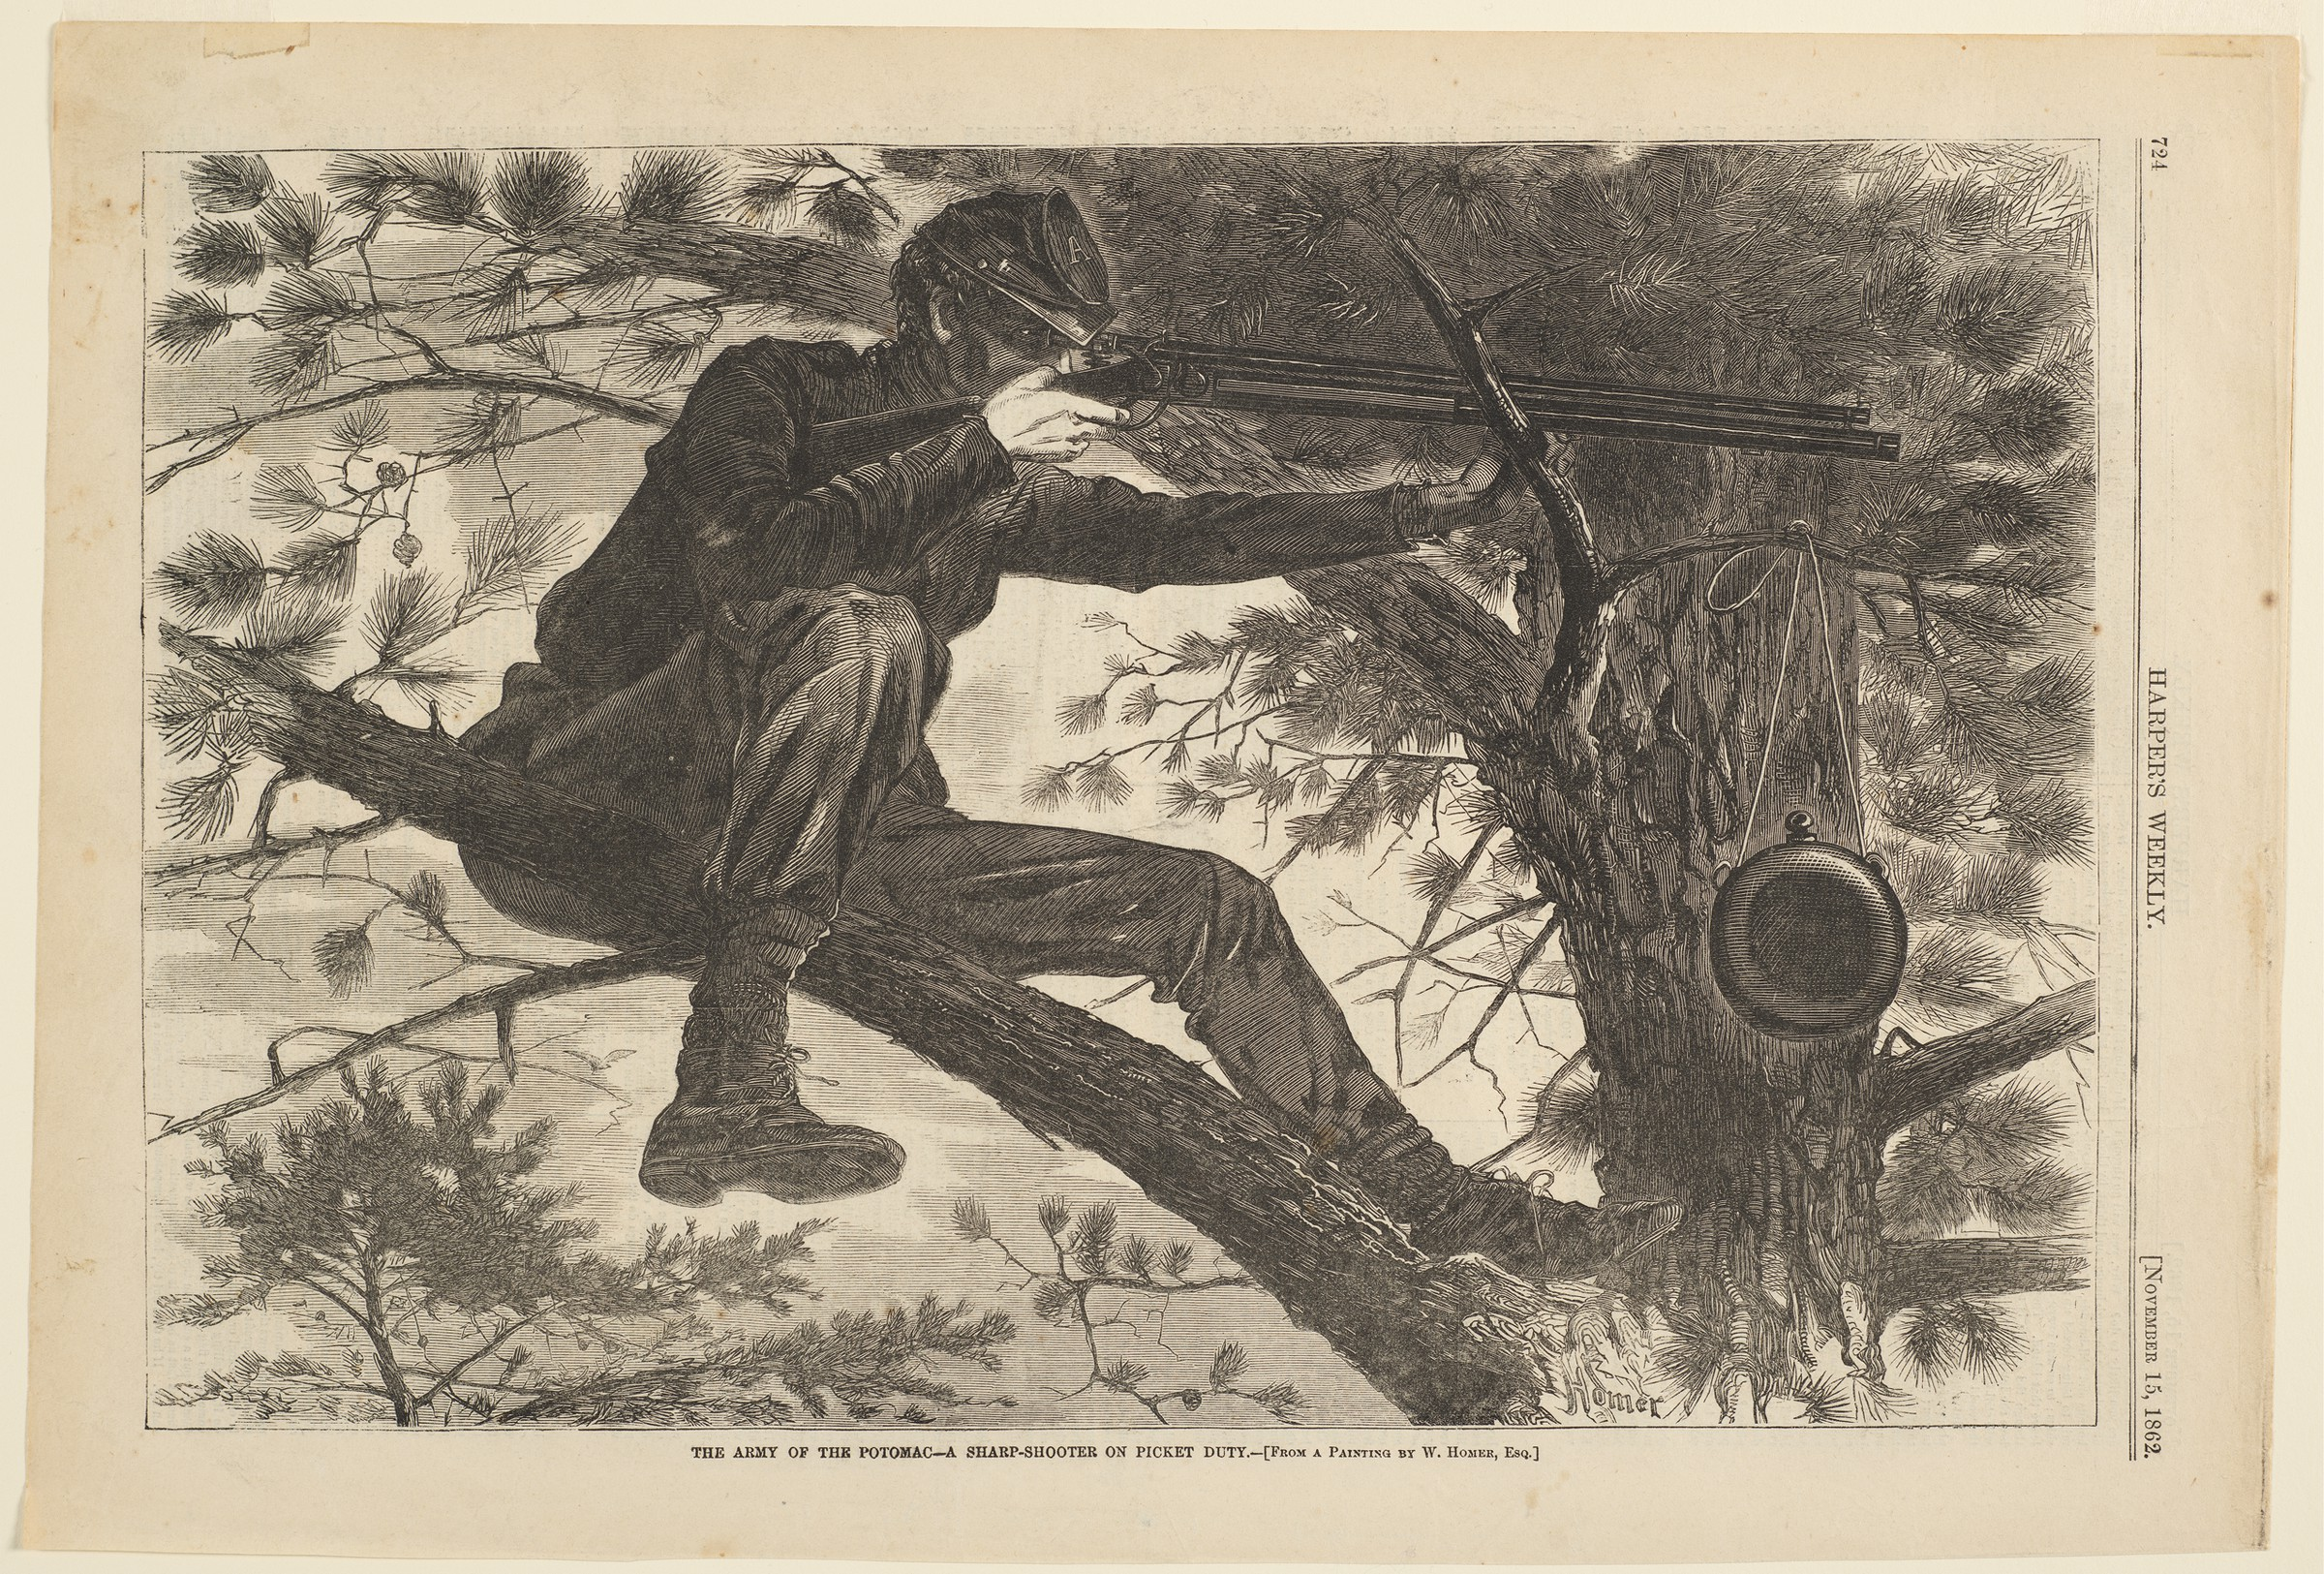 An engraving of a soldier sitting in a high tree branch, pointing his gun while his canteen hangs from a smaller branch.